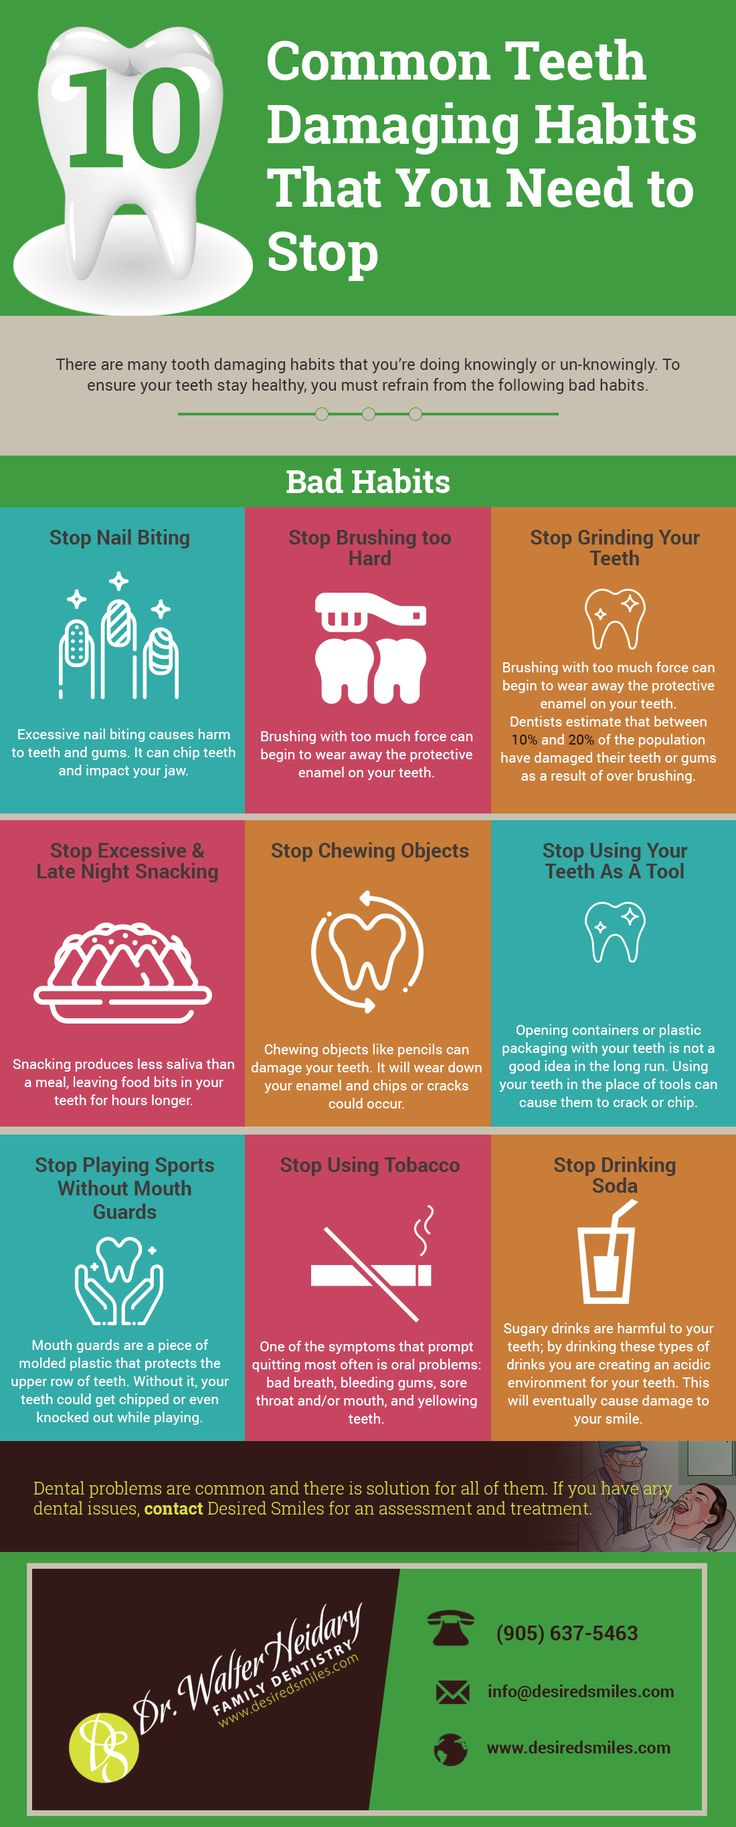 10 Common Teeth Damaging Habits That You Need to Stop Today.  Bad Habits are the cause of most of the dental problems. Read this infographic to understand the common bad habits and how they harm your teeth. Desired Smiles provides a solution for all of your dental problem. Call 905-637-5463 or visit www.desiredsmiles.com for any queries.